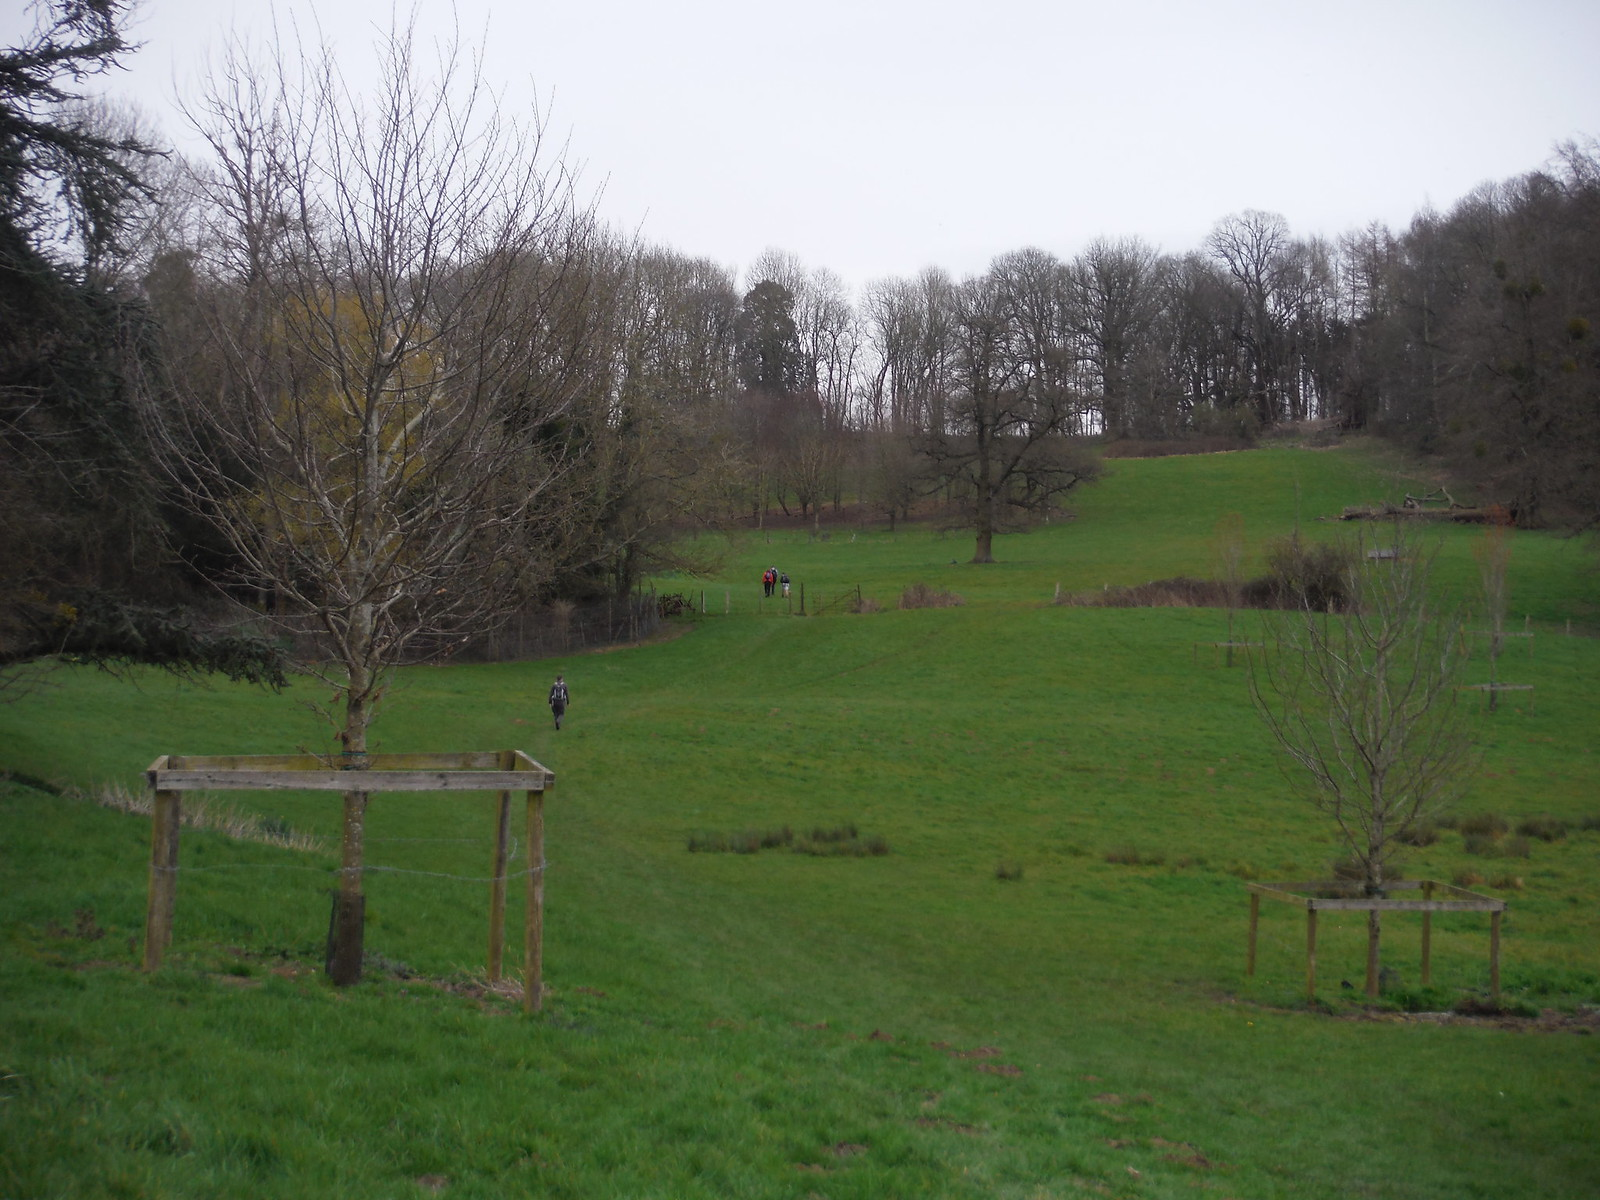 Midgham Park SWC Walk 260 Aldermaston to Woolhampton [Midgham Station] (via Frilsham)